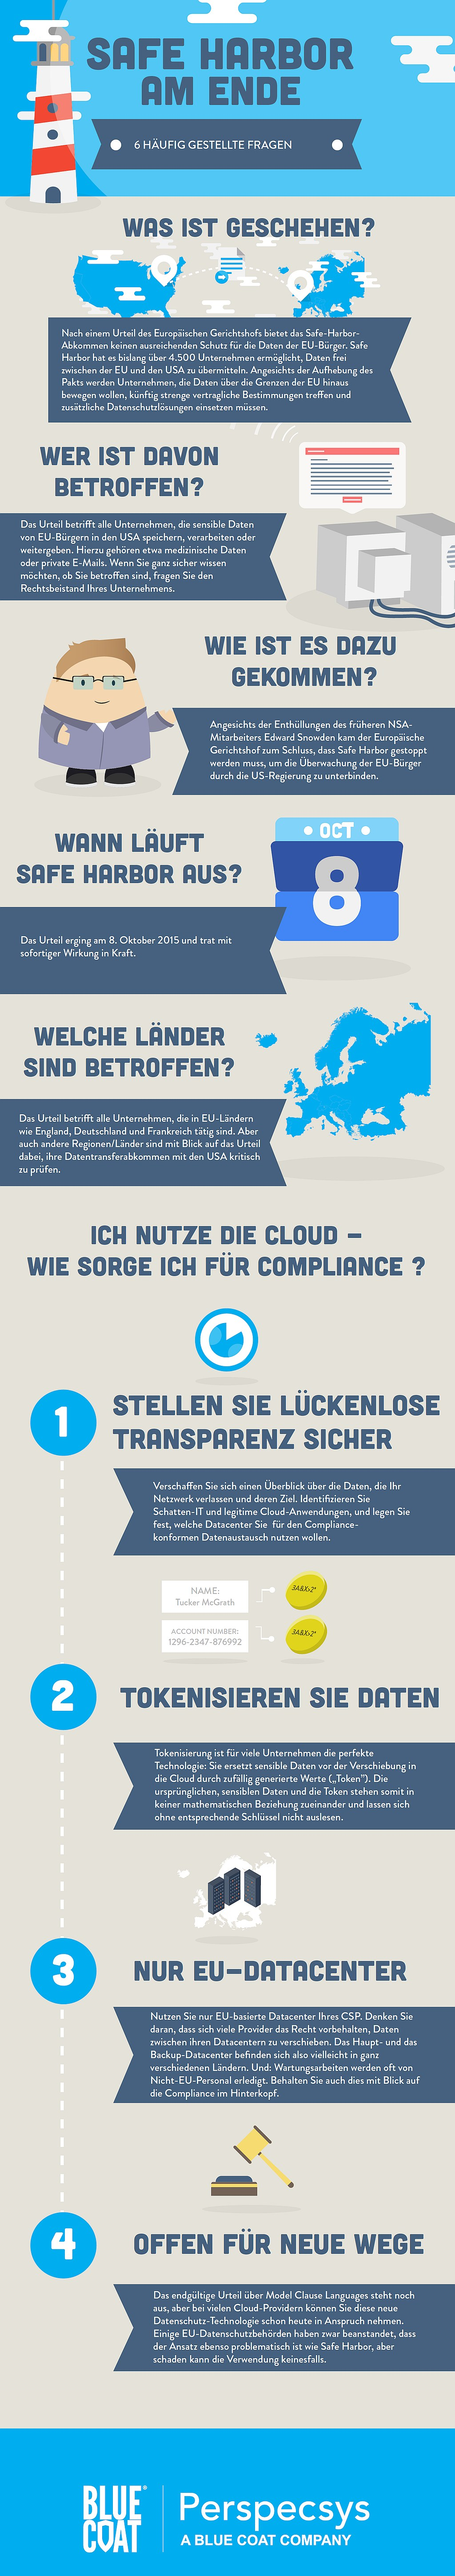 infografik blue coat safe harbor